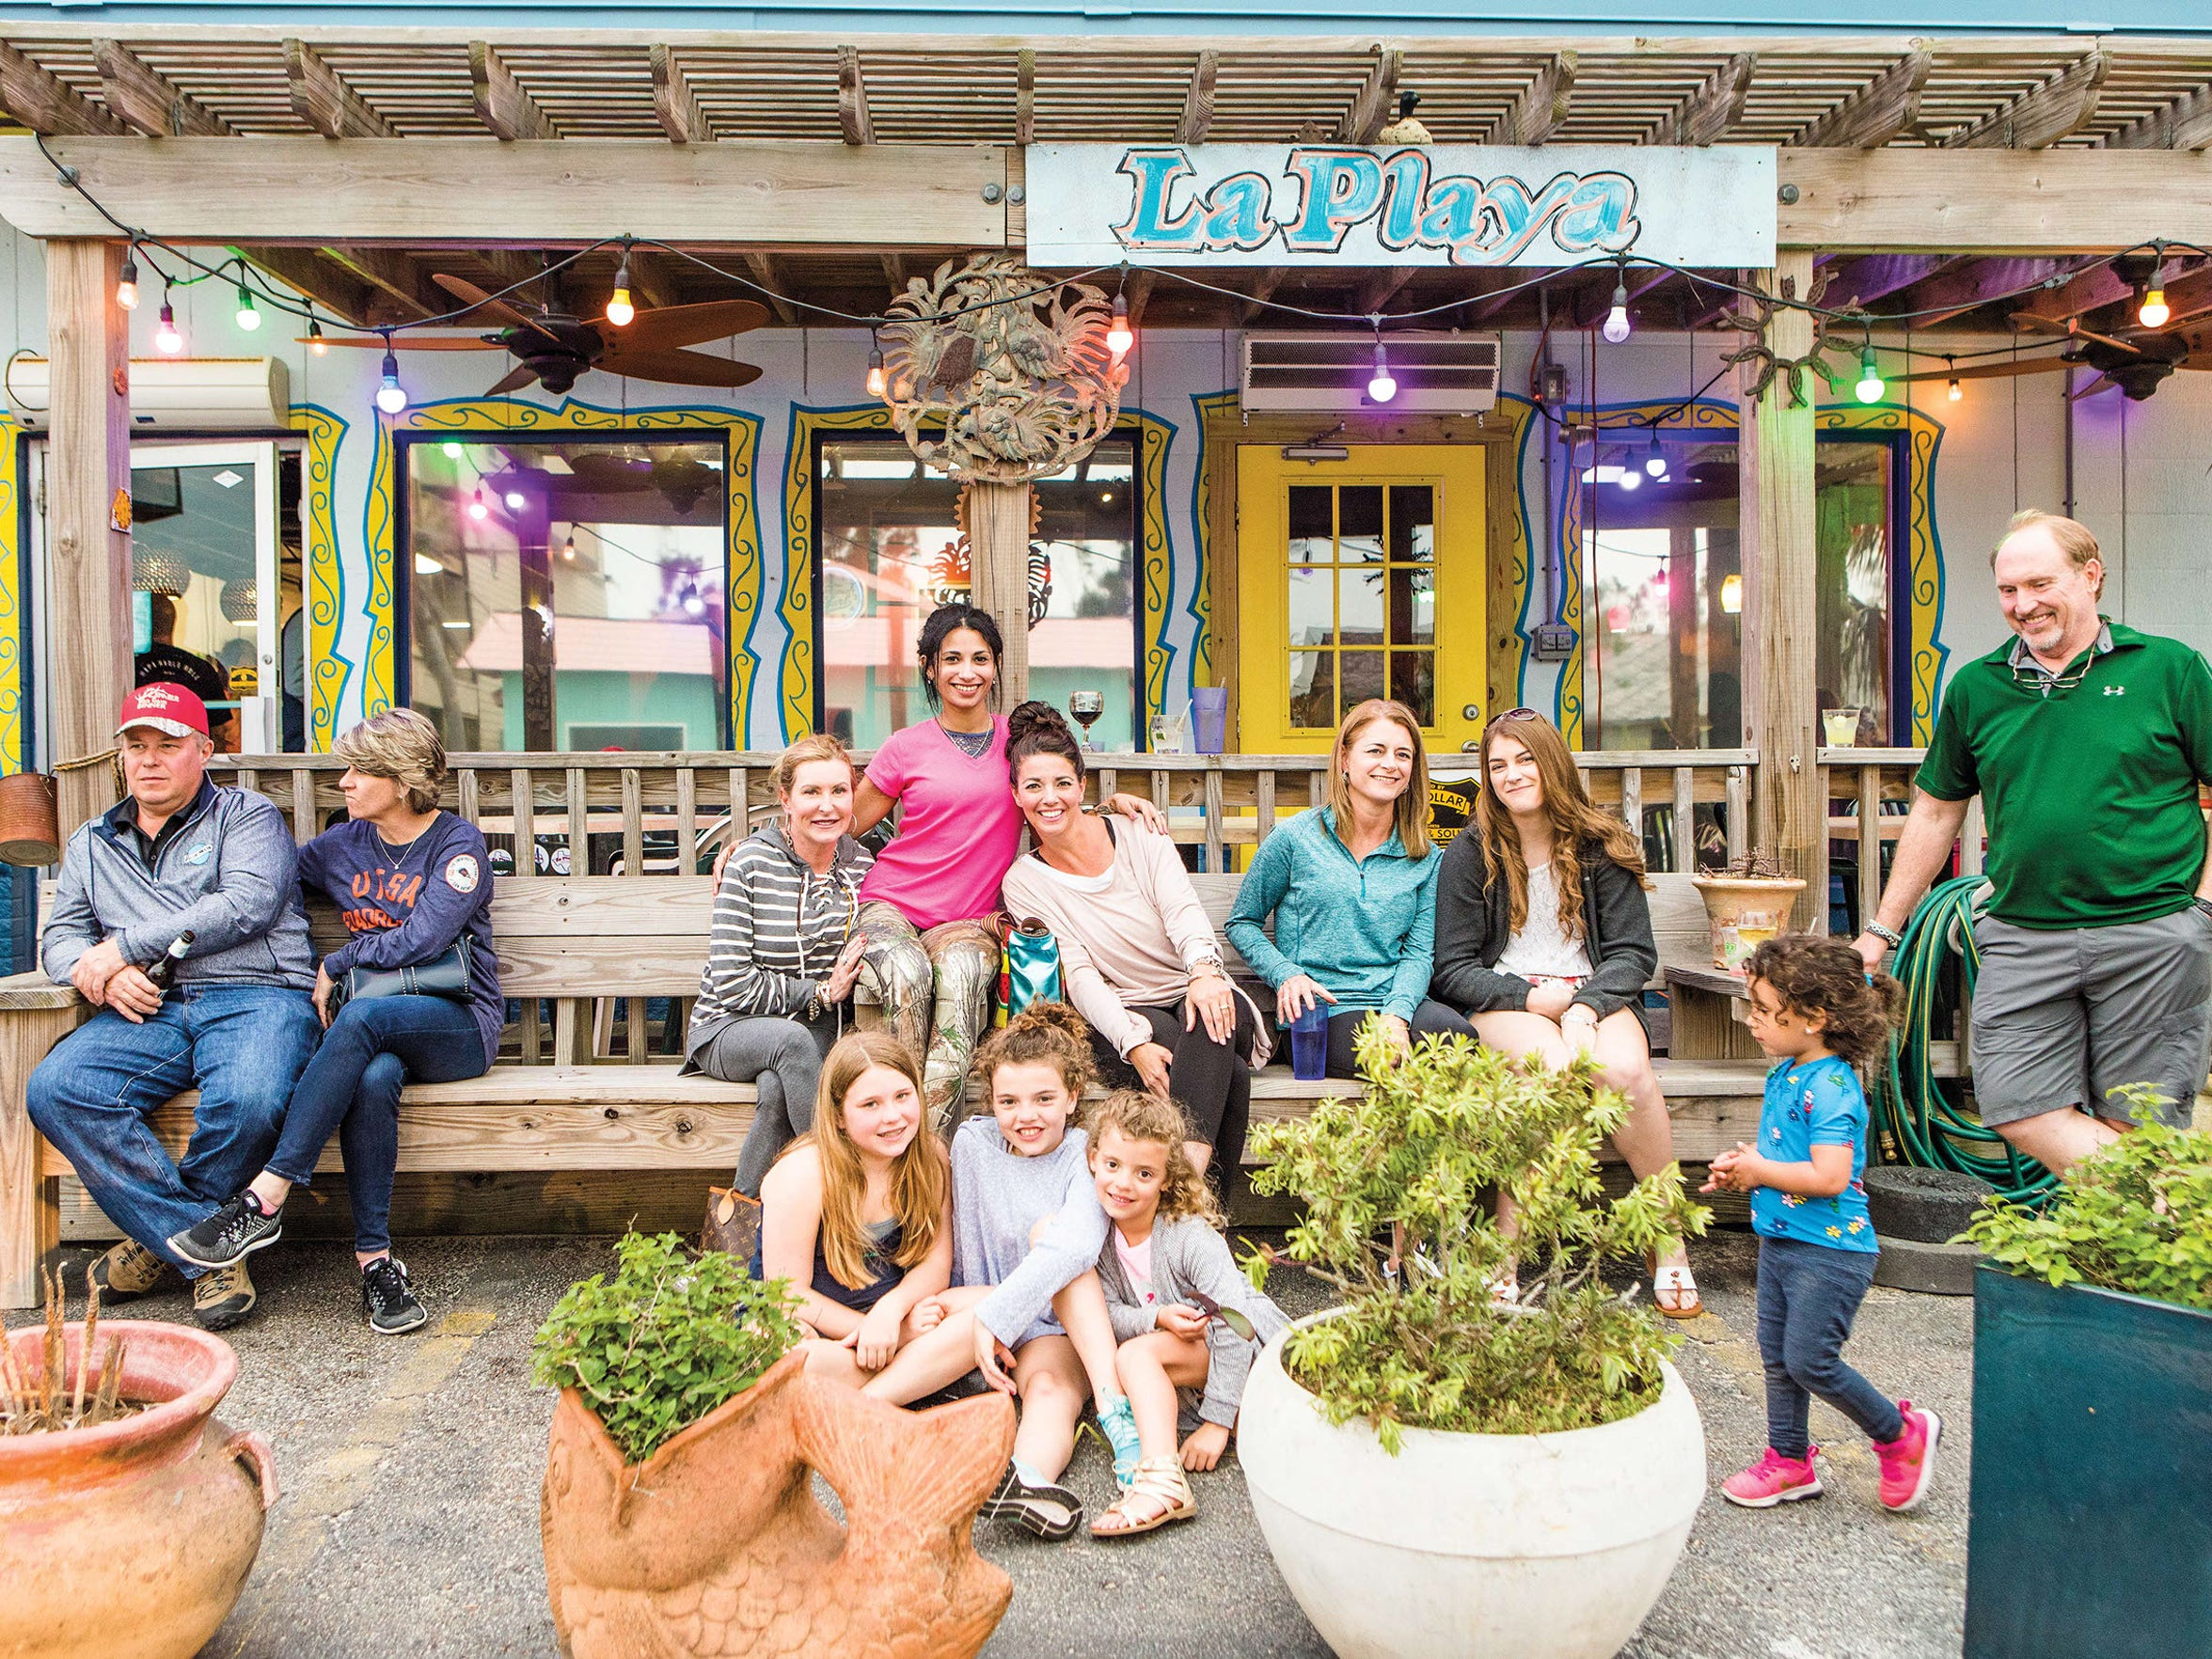 A family of diners poses for photos at La Playa Mexican